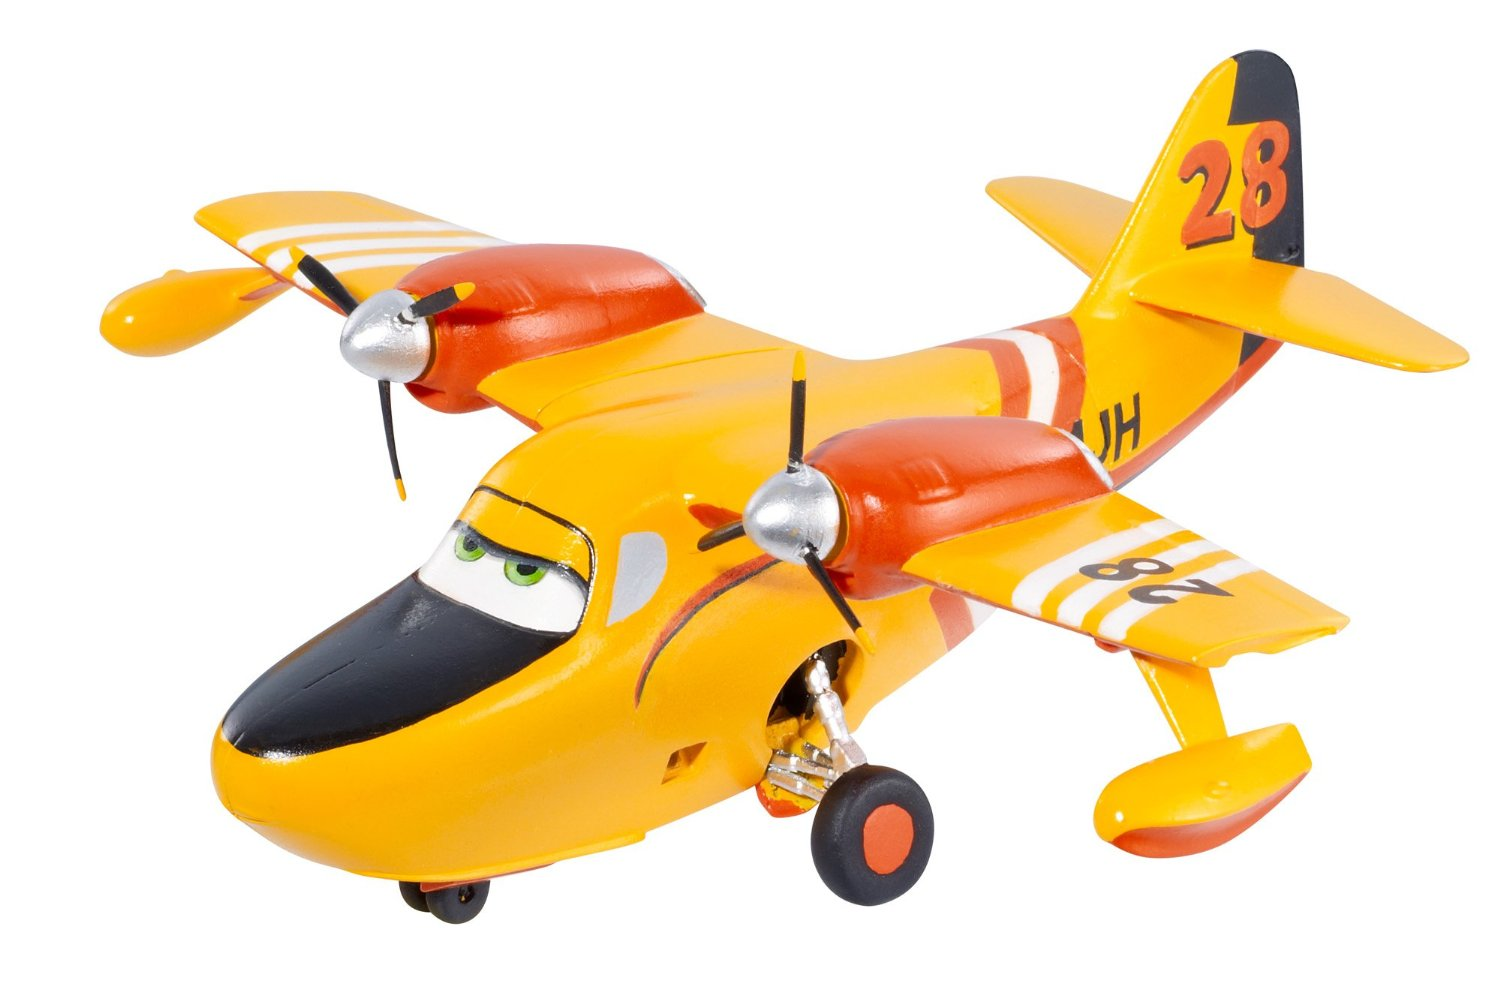 Airplane Toys For 3 Year Olds : Baby mozart helicopter related keywords